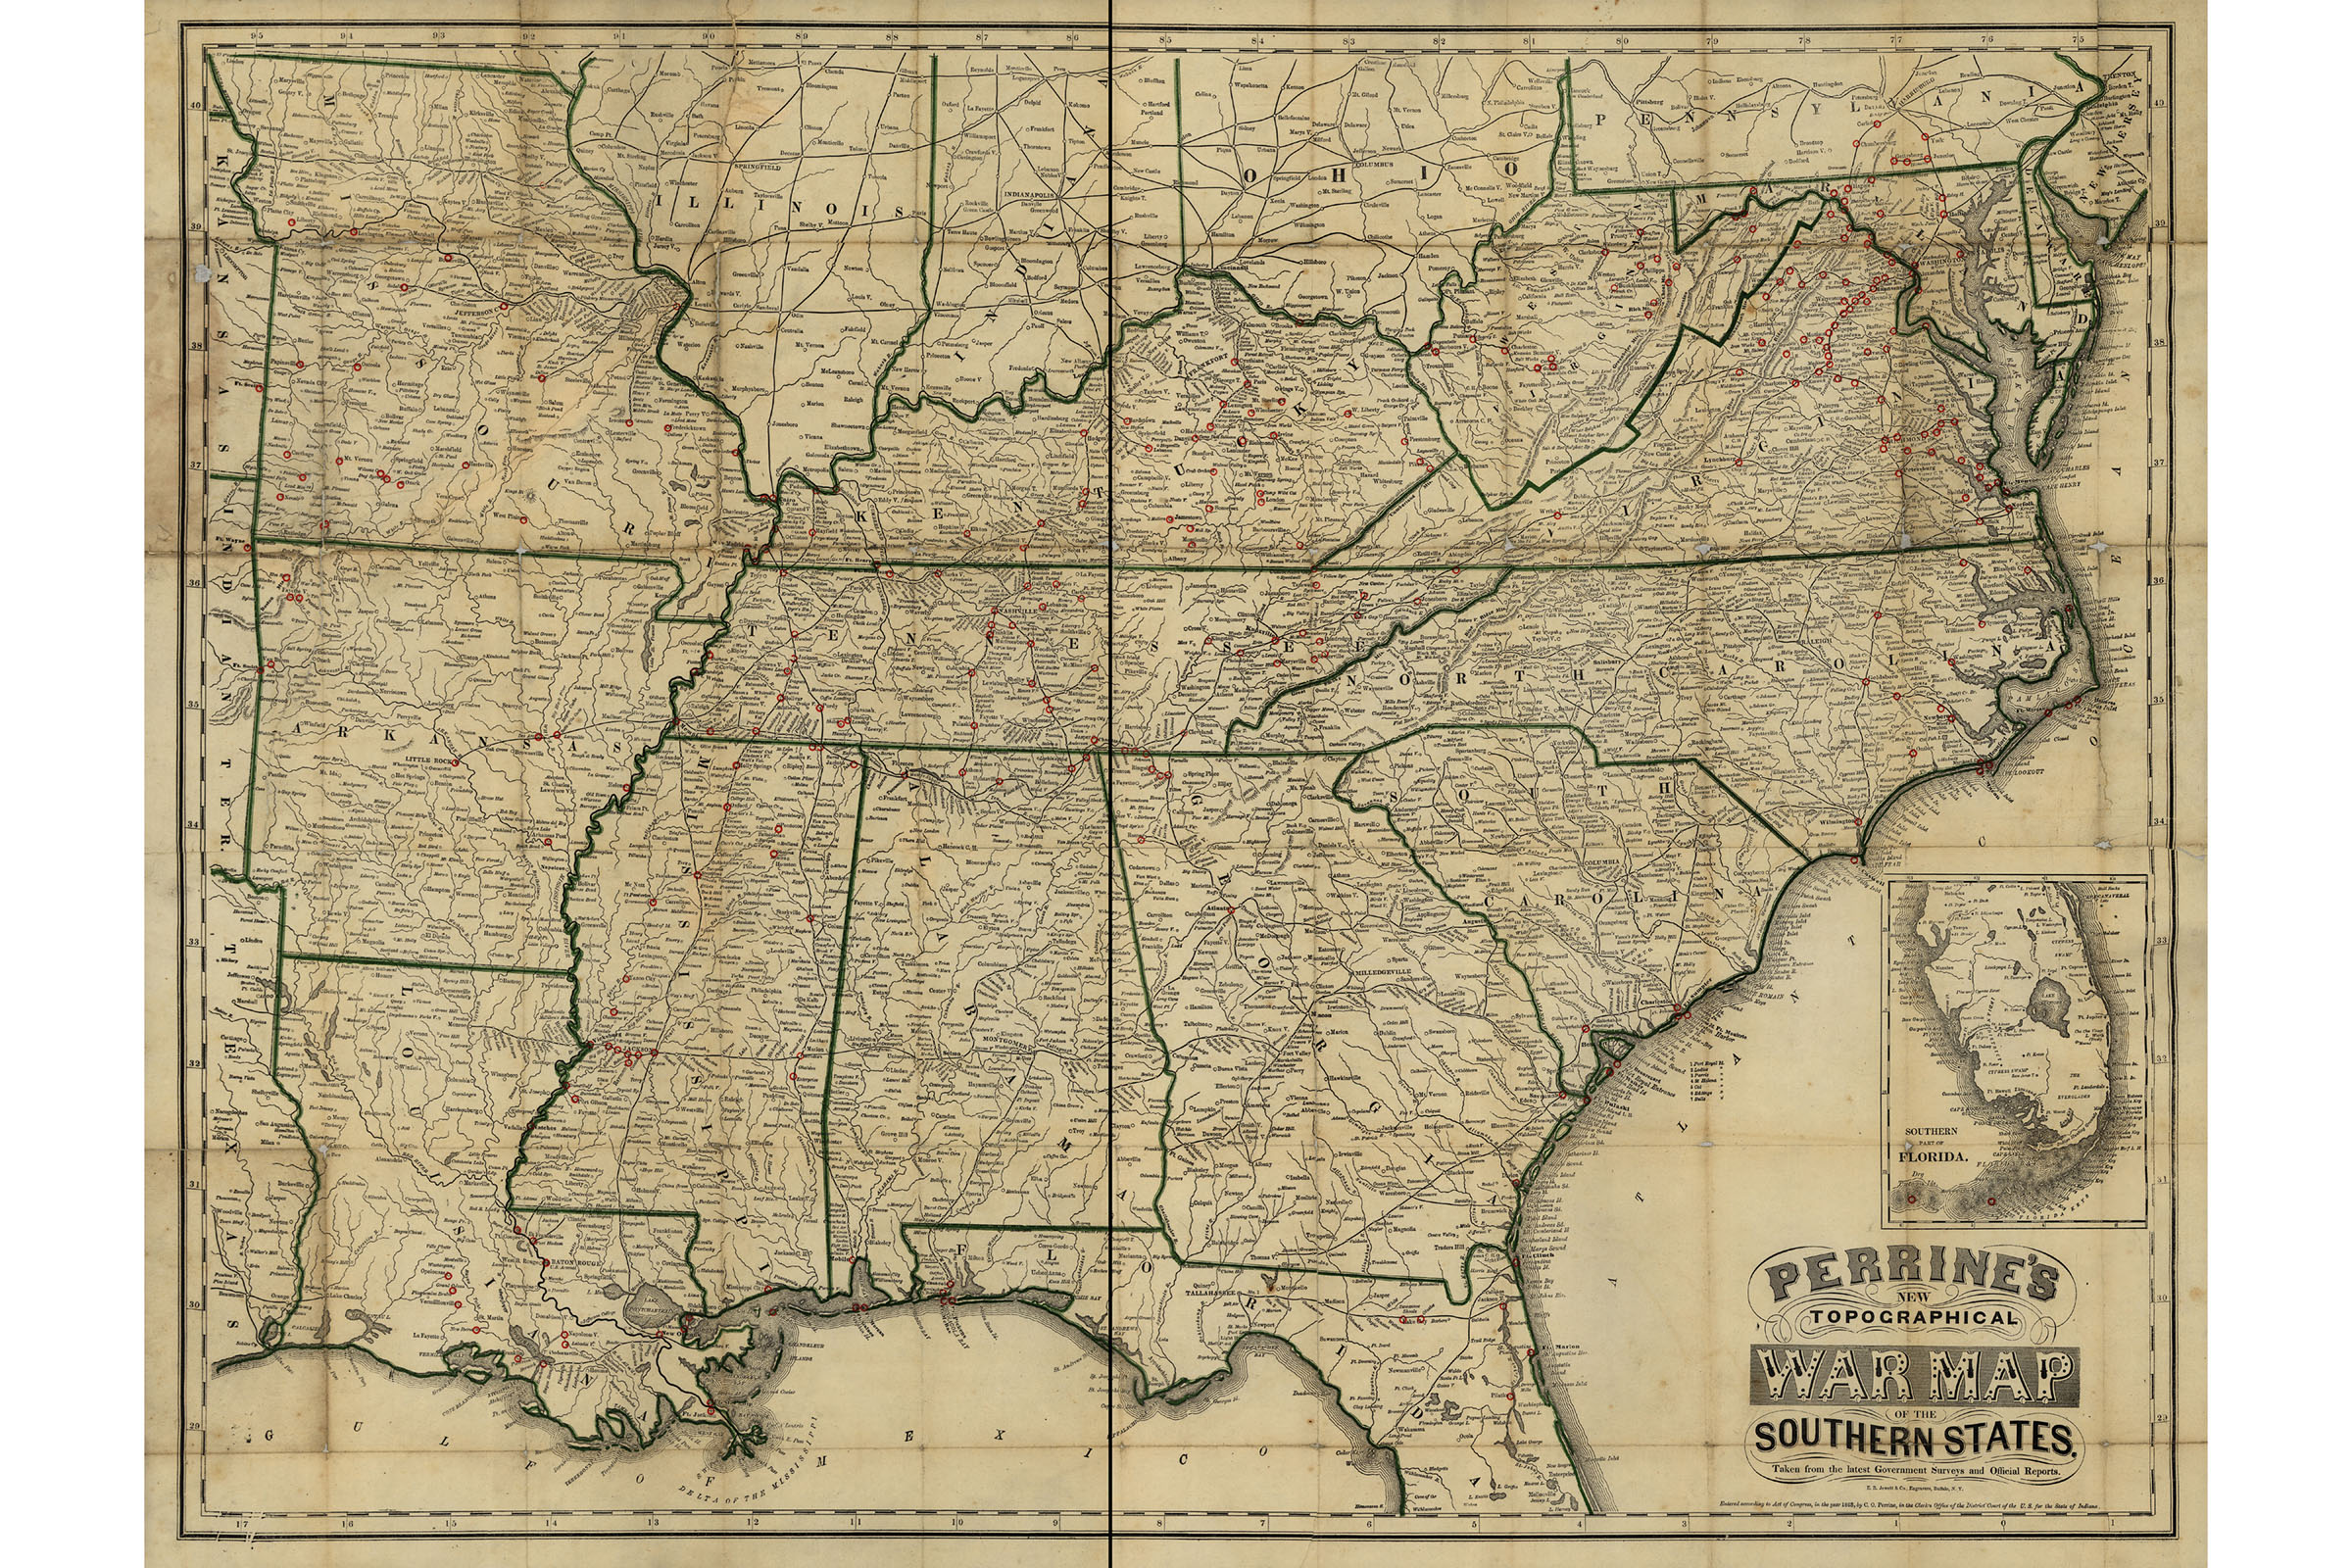 Civil War Map Perrine S Topographical War Map Of The